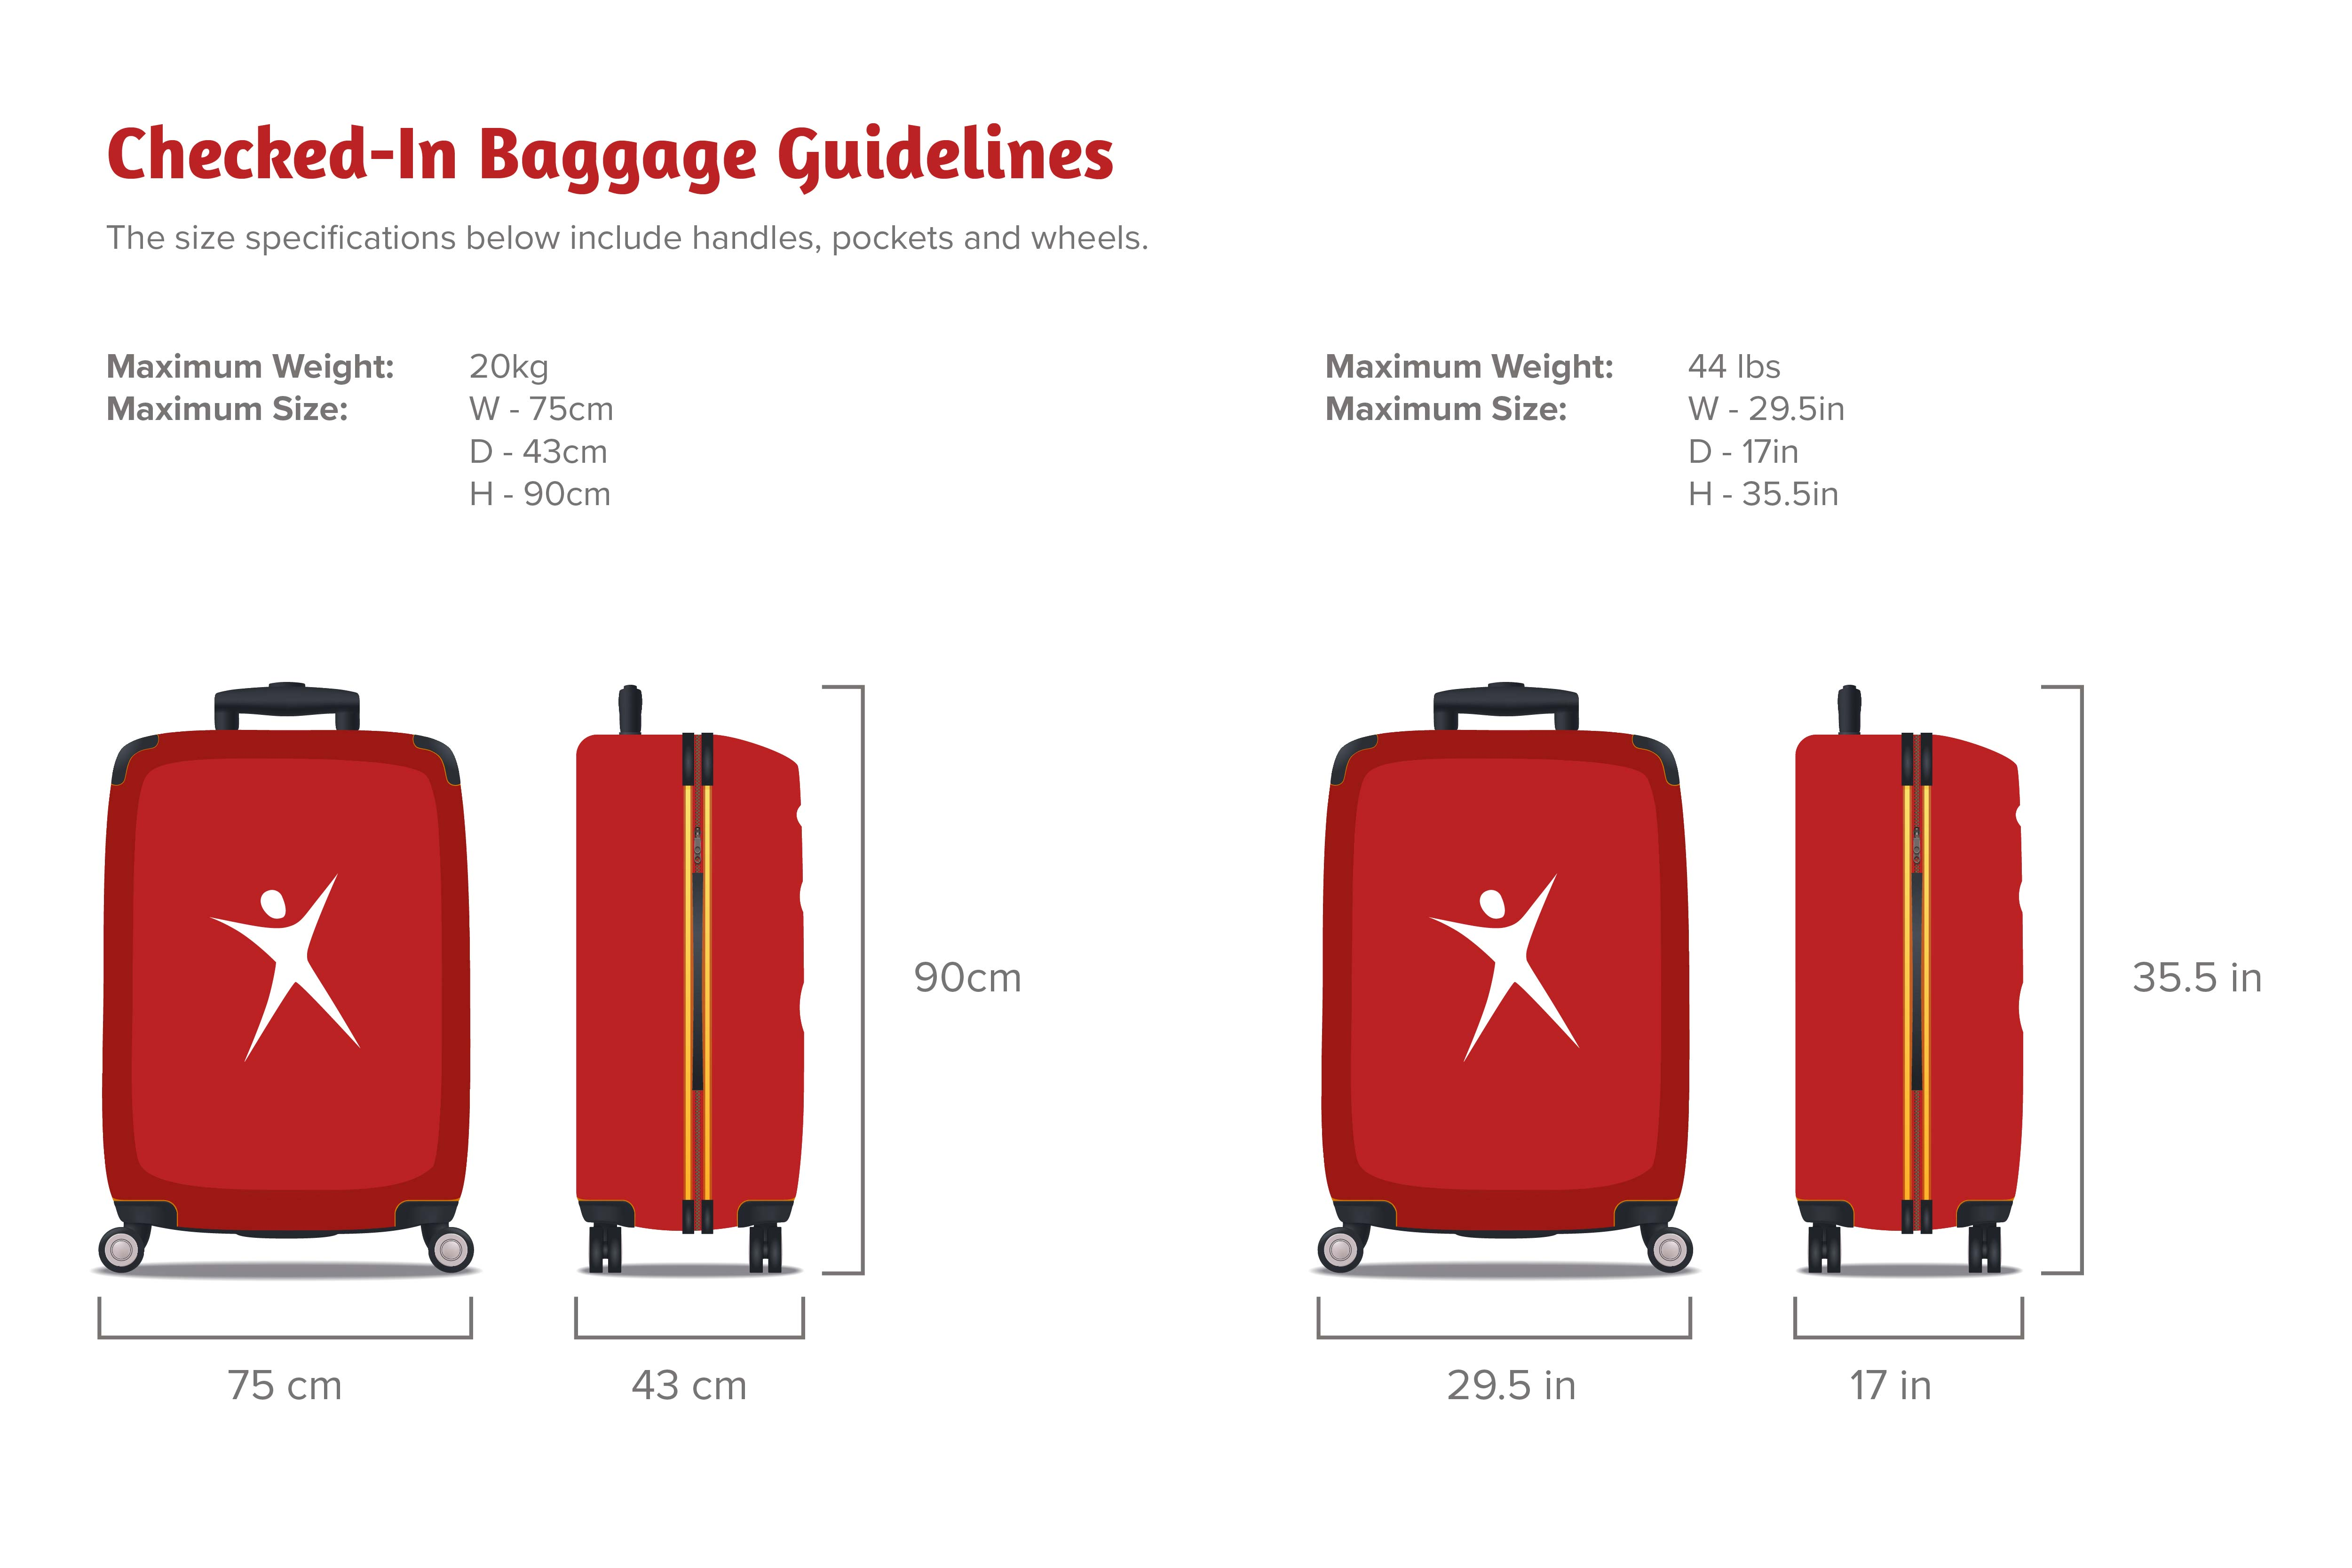 Knowing the luggage restriction makes it easier to pack.